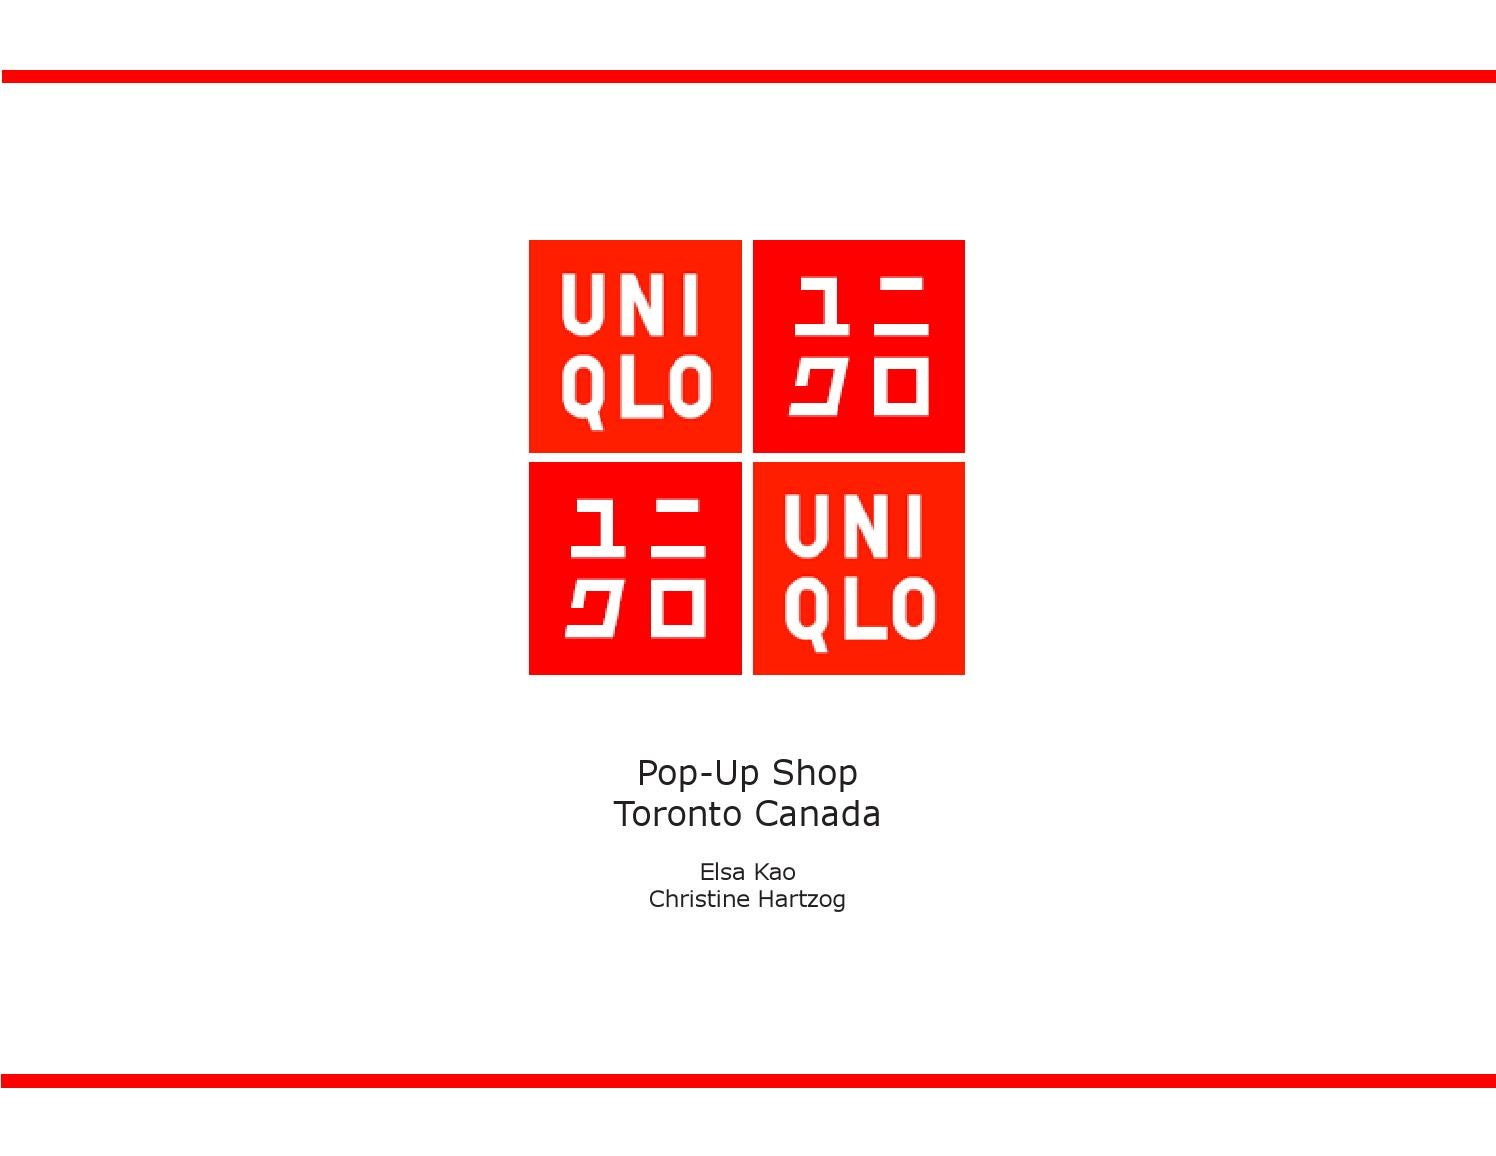 uniqlo marketing plan On jul 1, 2015, roy larke published the chapter: uniqlo: the next ten years in the book: strategic marketing creating competitive advantage.